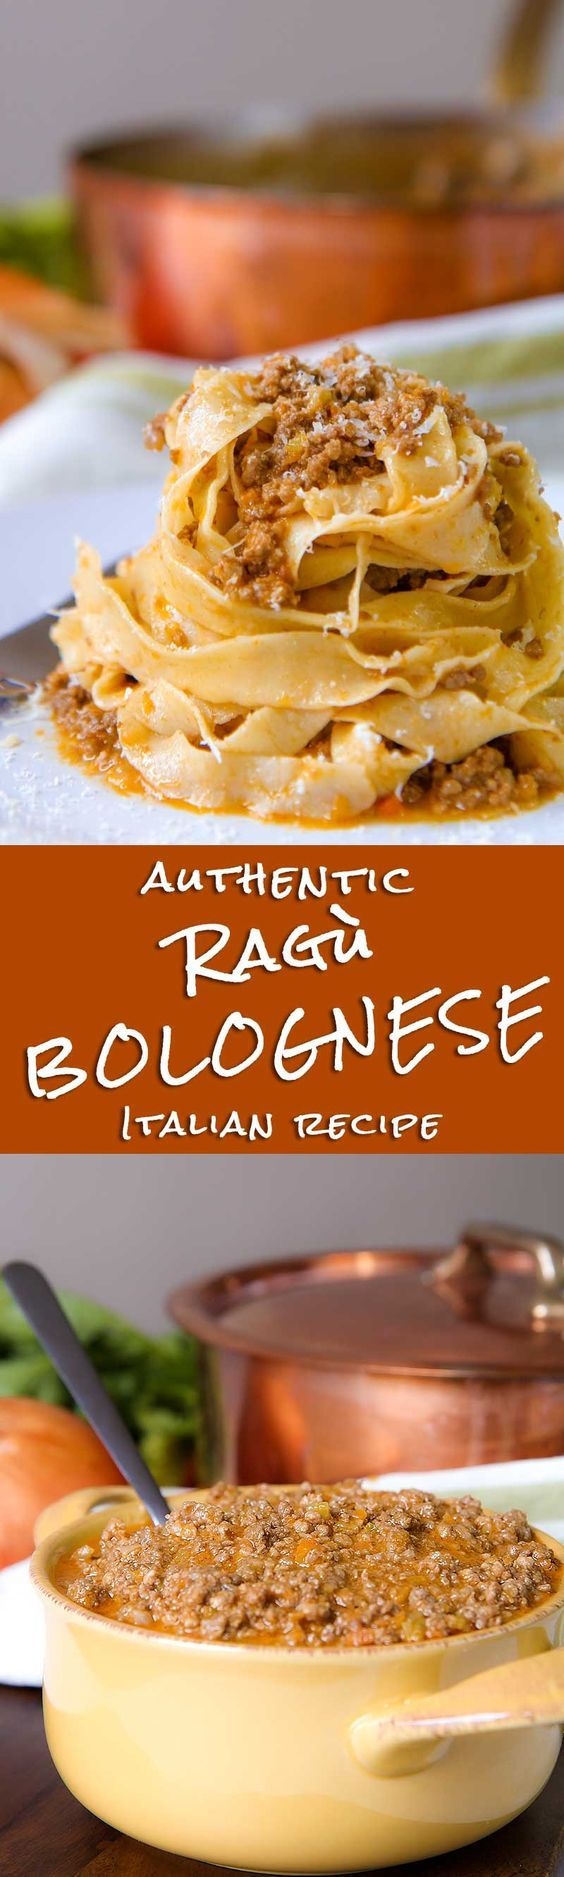 "AUTHENTIC BOLOGNESE SAUCE (Ragù alla Bolognese) - Ragù alla Bolognese is one of the most important recipes of my own city, perhaps the most famous Italian dish in the world. Unfortunately, it is also the most mangling Italian recipe! The preparation of this great recipe is very easy, but needs time, right ingredients and a very good thick-bottomed heavy pot. Take your time and be prepared to taste something different than the ordinary ""Bolognese sauce""! - dinner recipes pasta lasagna family"